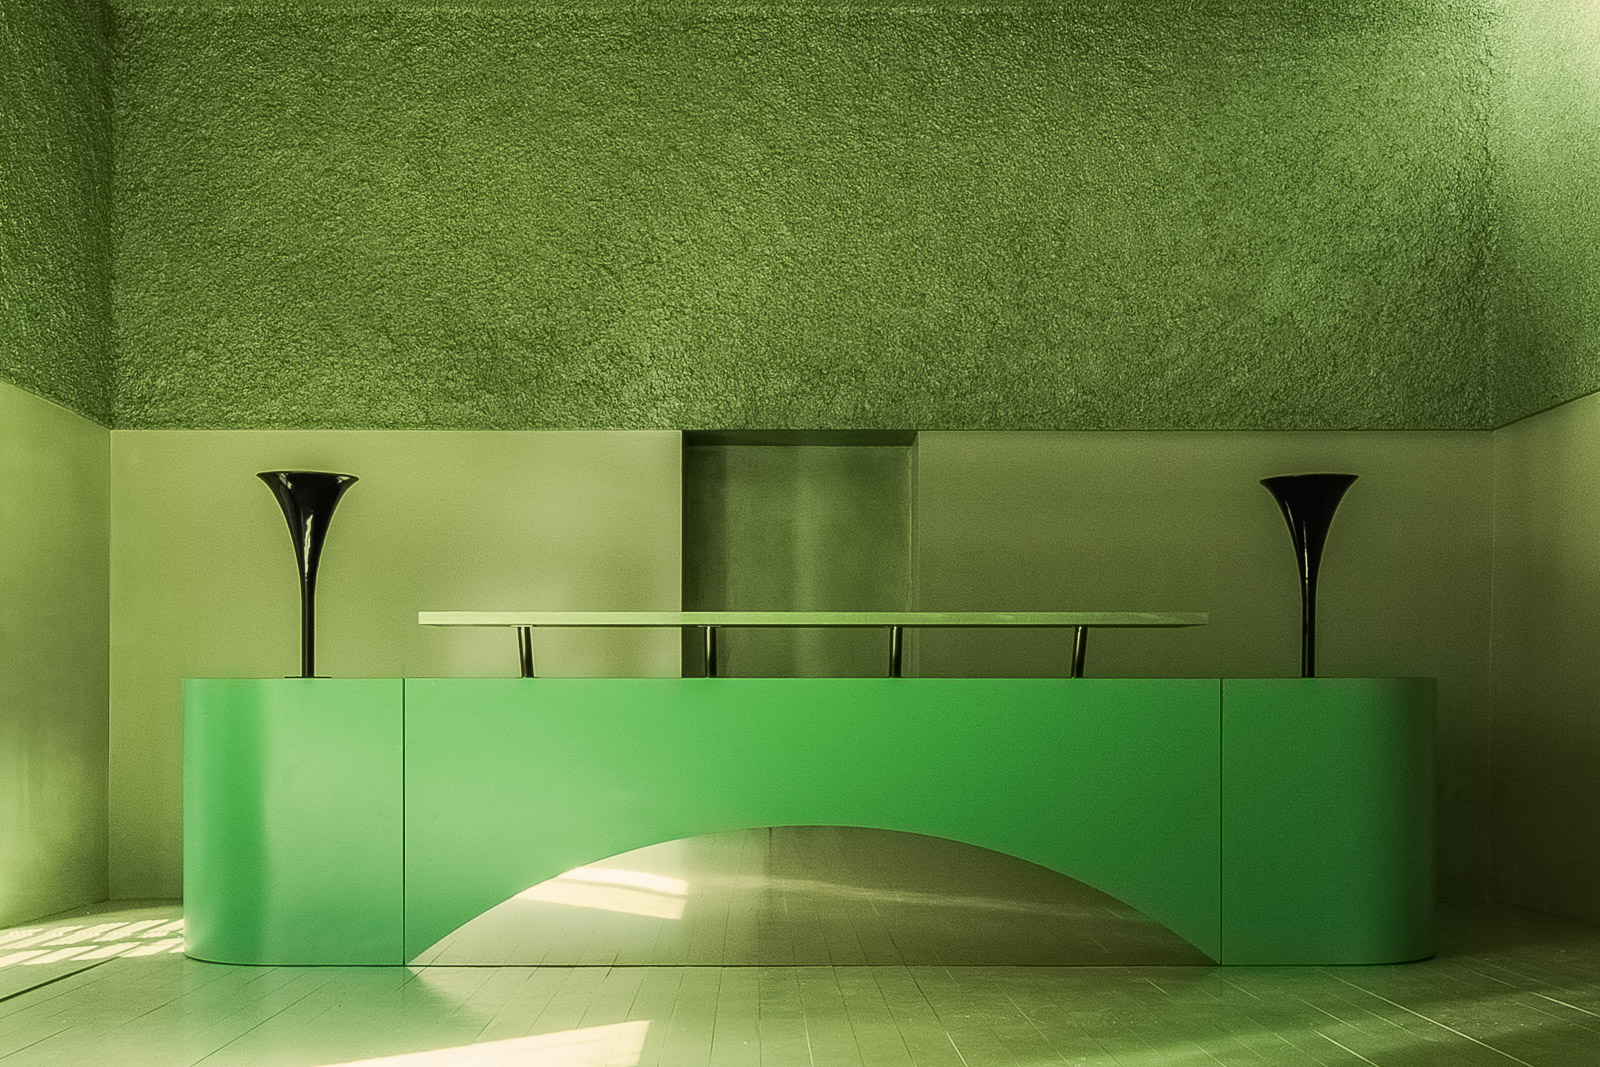 Antonino Cardillo, Crepuscular Green, Rome 2014. Photography by Antonino Cardillo.